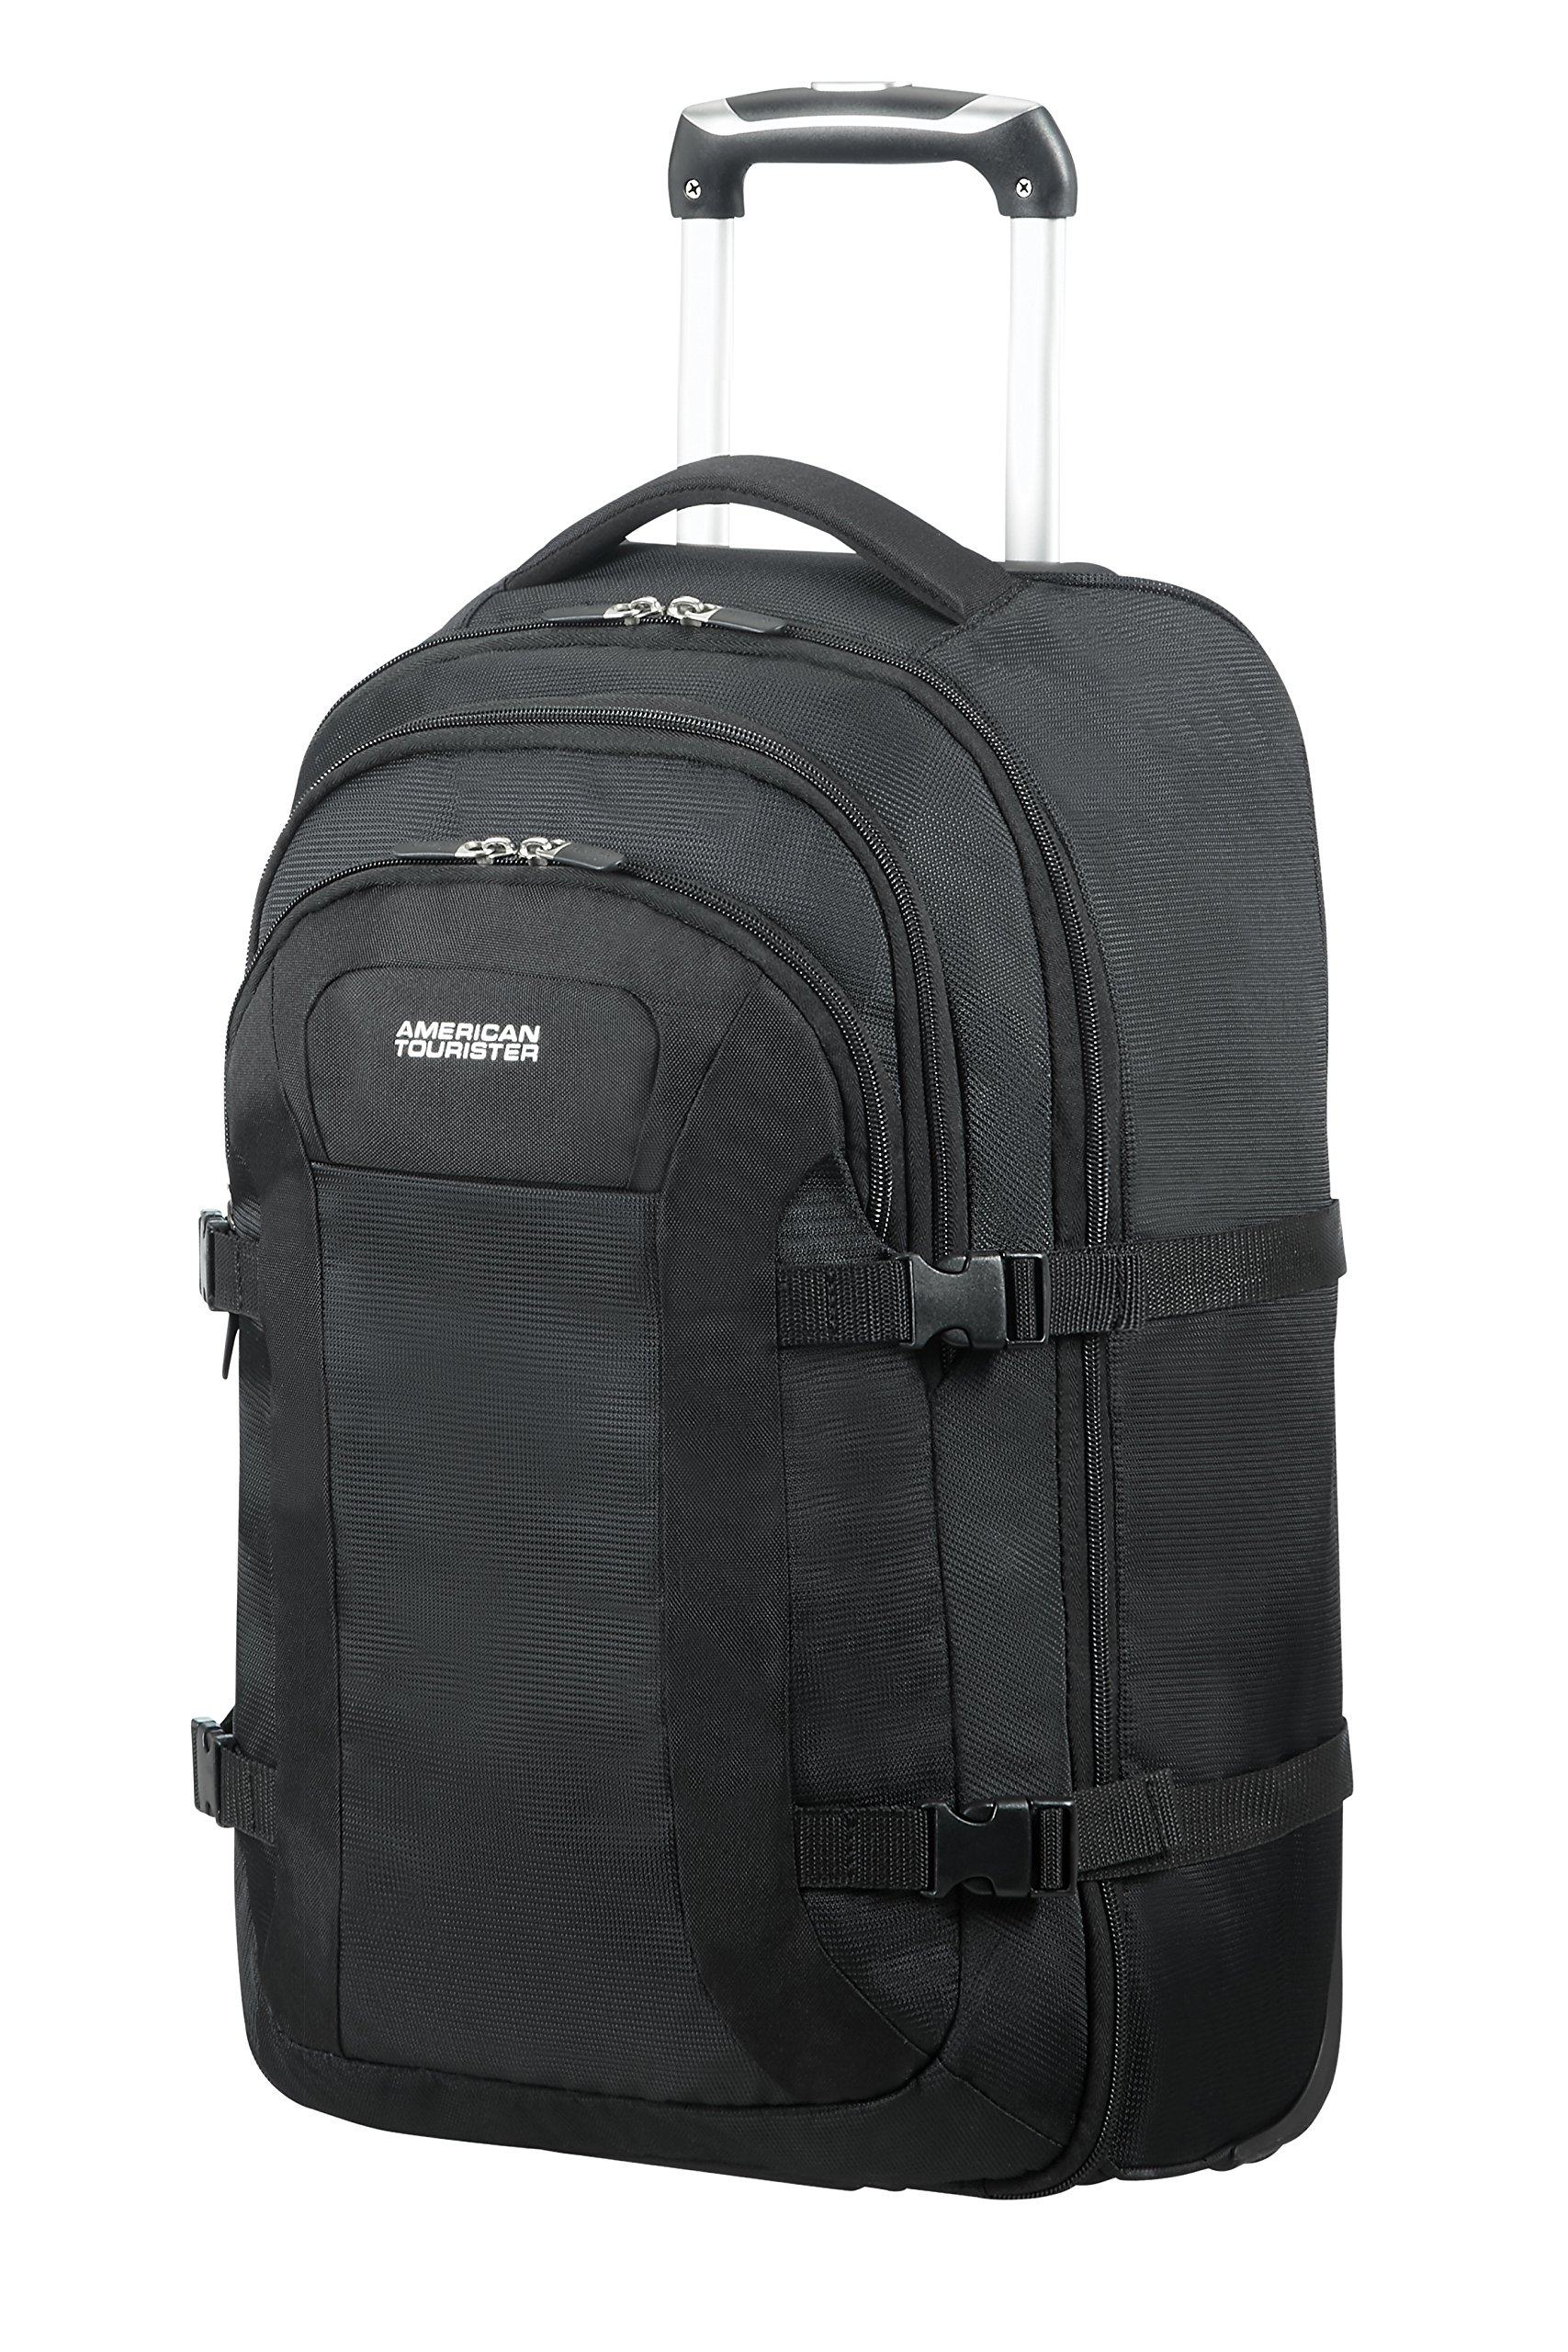 AMERICAN TOURISTER Road Quest Wheeled Laptop Backpack 15.6 Rucksack, 53 cm, 35 L